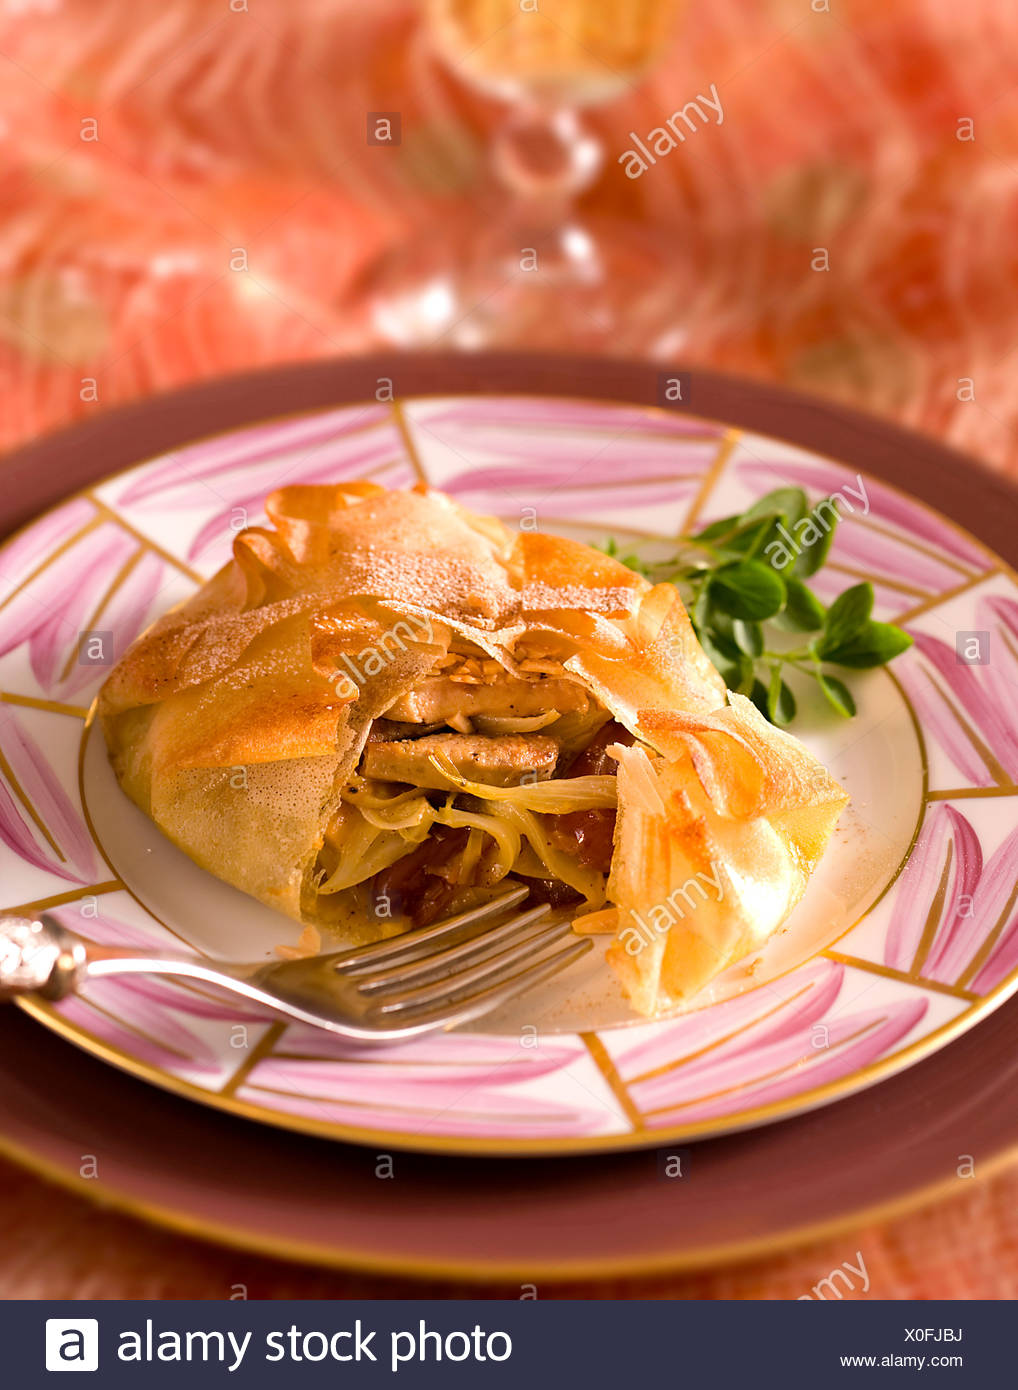 Stuffed Pastilla Pie with Onions and Dates - Stock Image